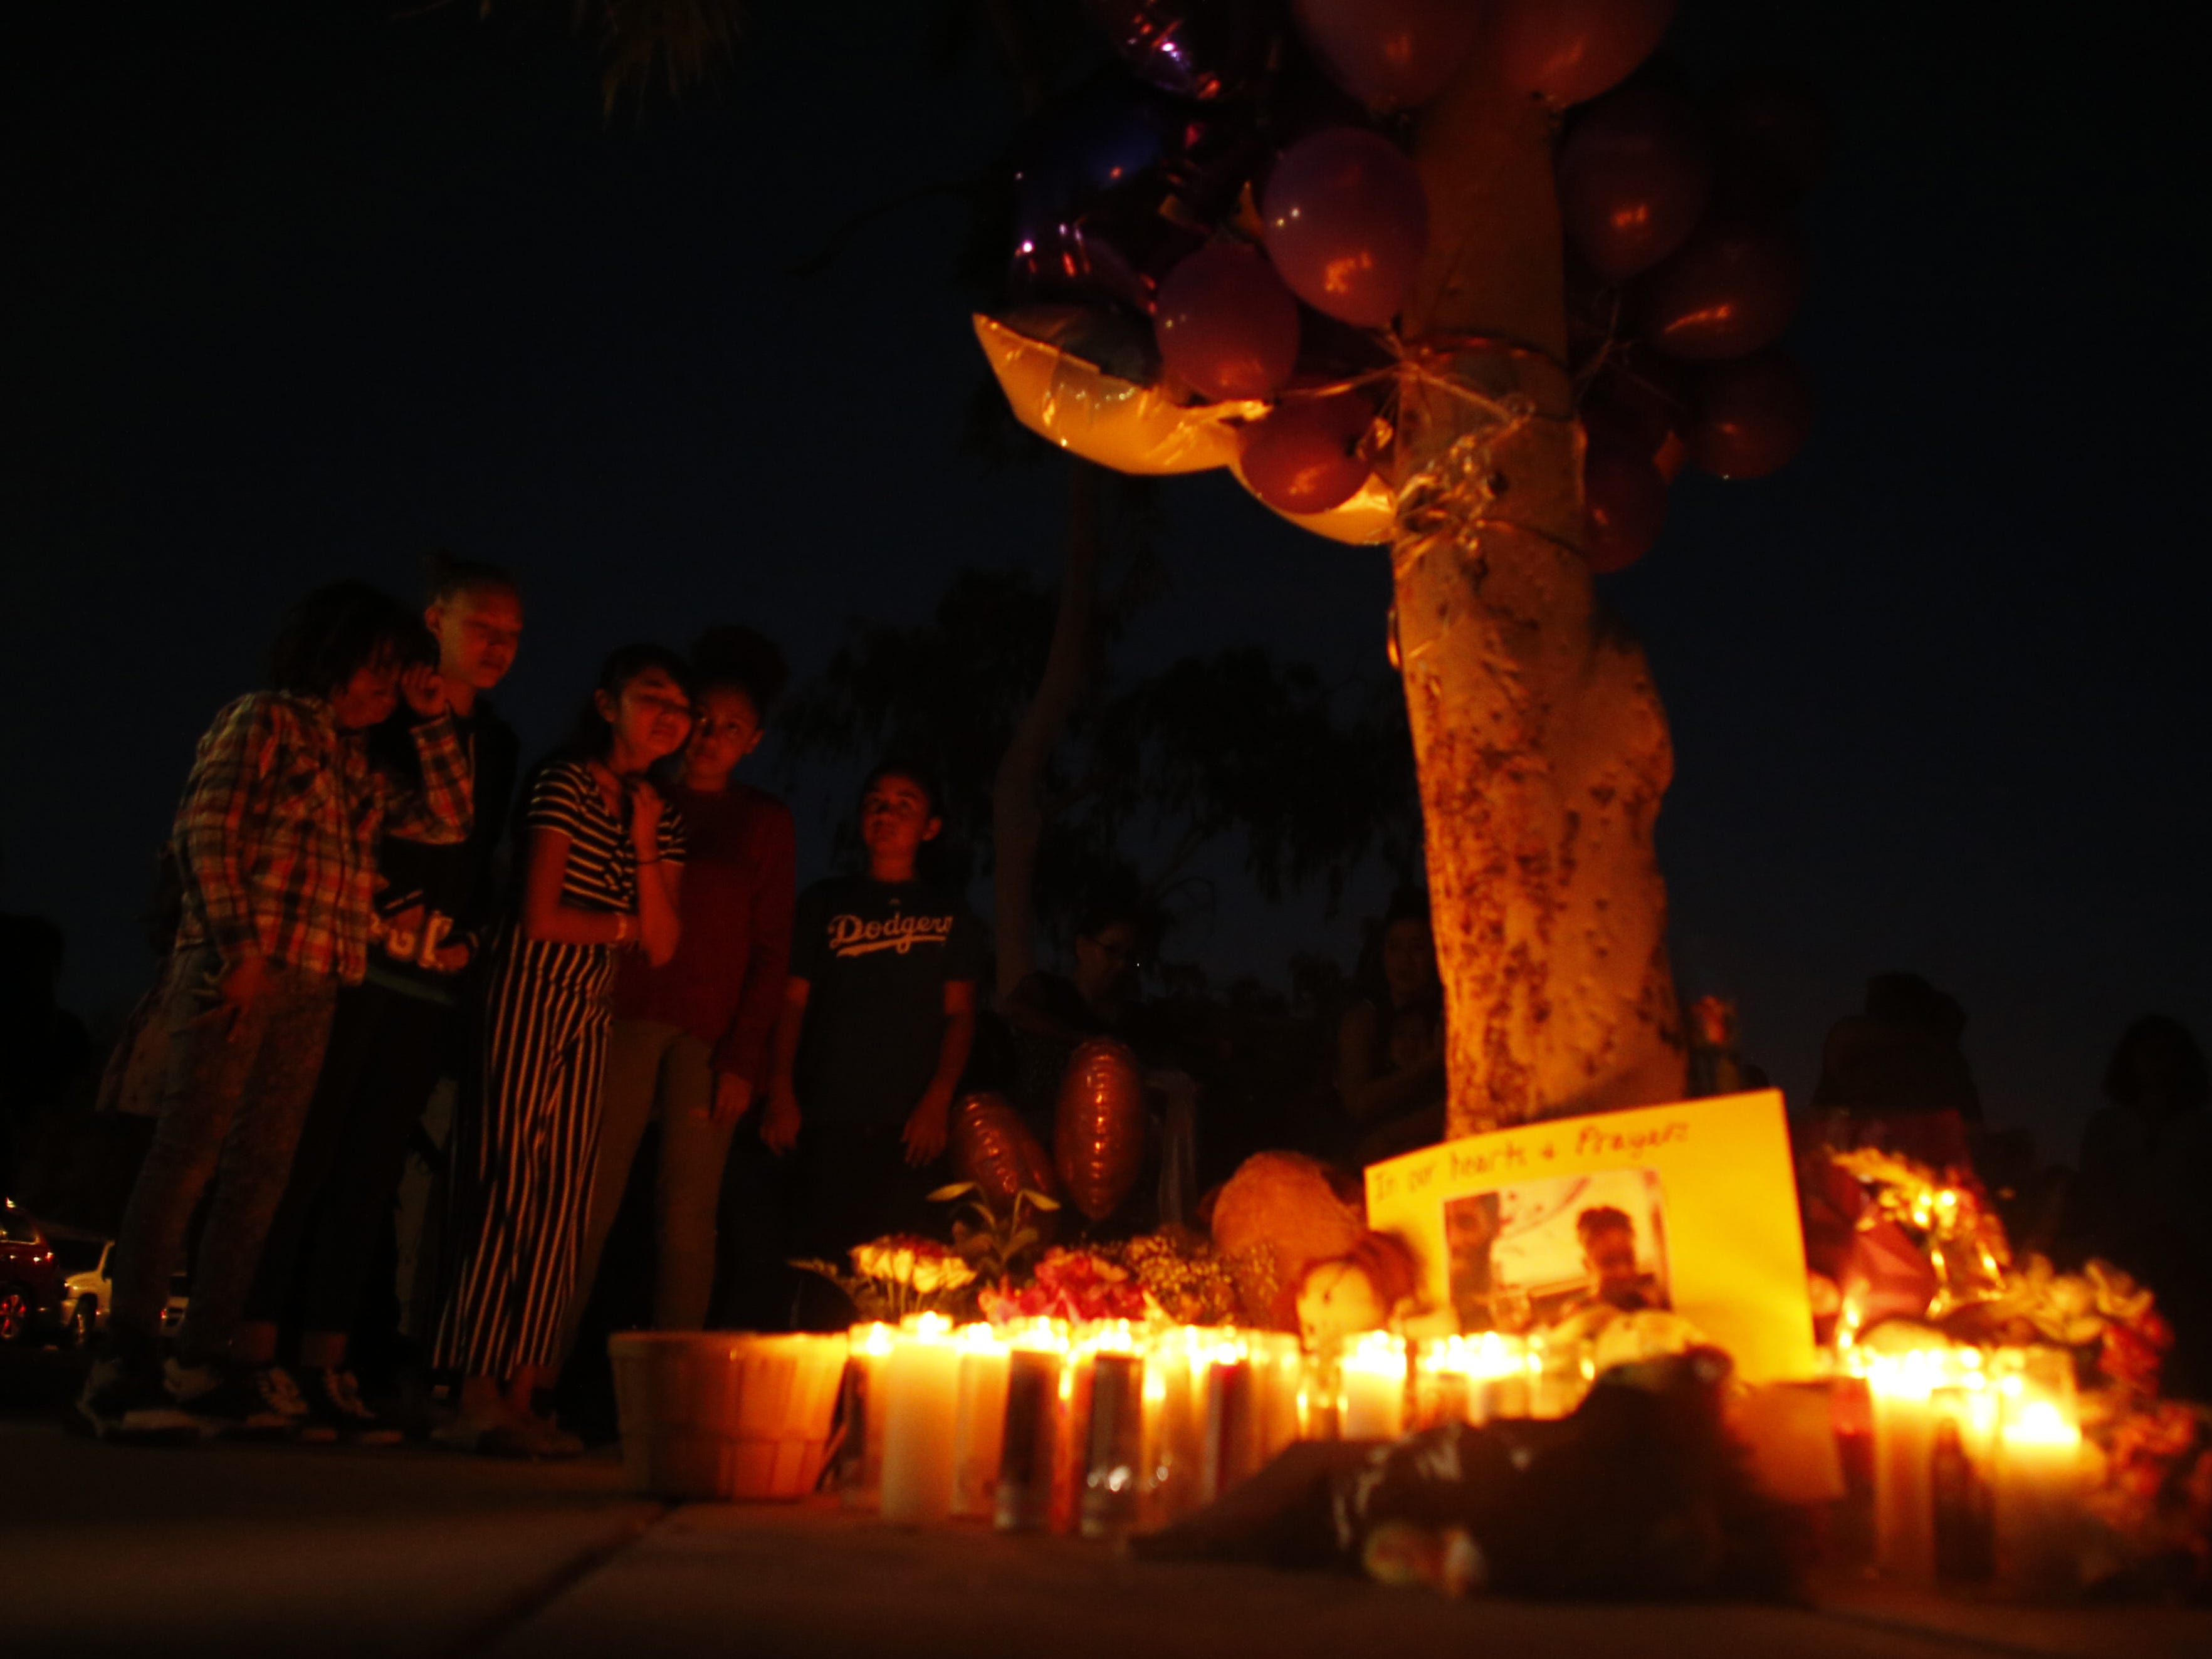 Classmates and friends cry as they gather around the candlelight at a vigil for Summer Bell Brown on April 5, 2019, outside her home where she was shot and killed in Phoenix. Brown was 10 years old.